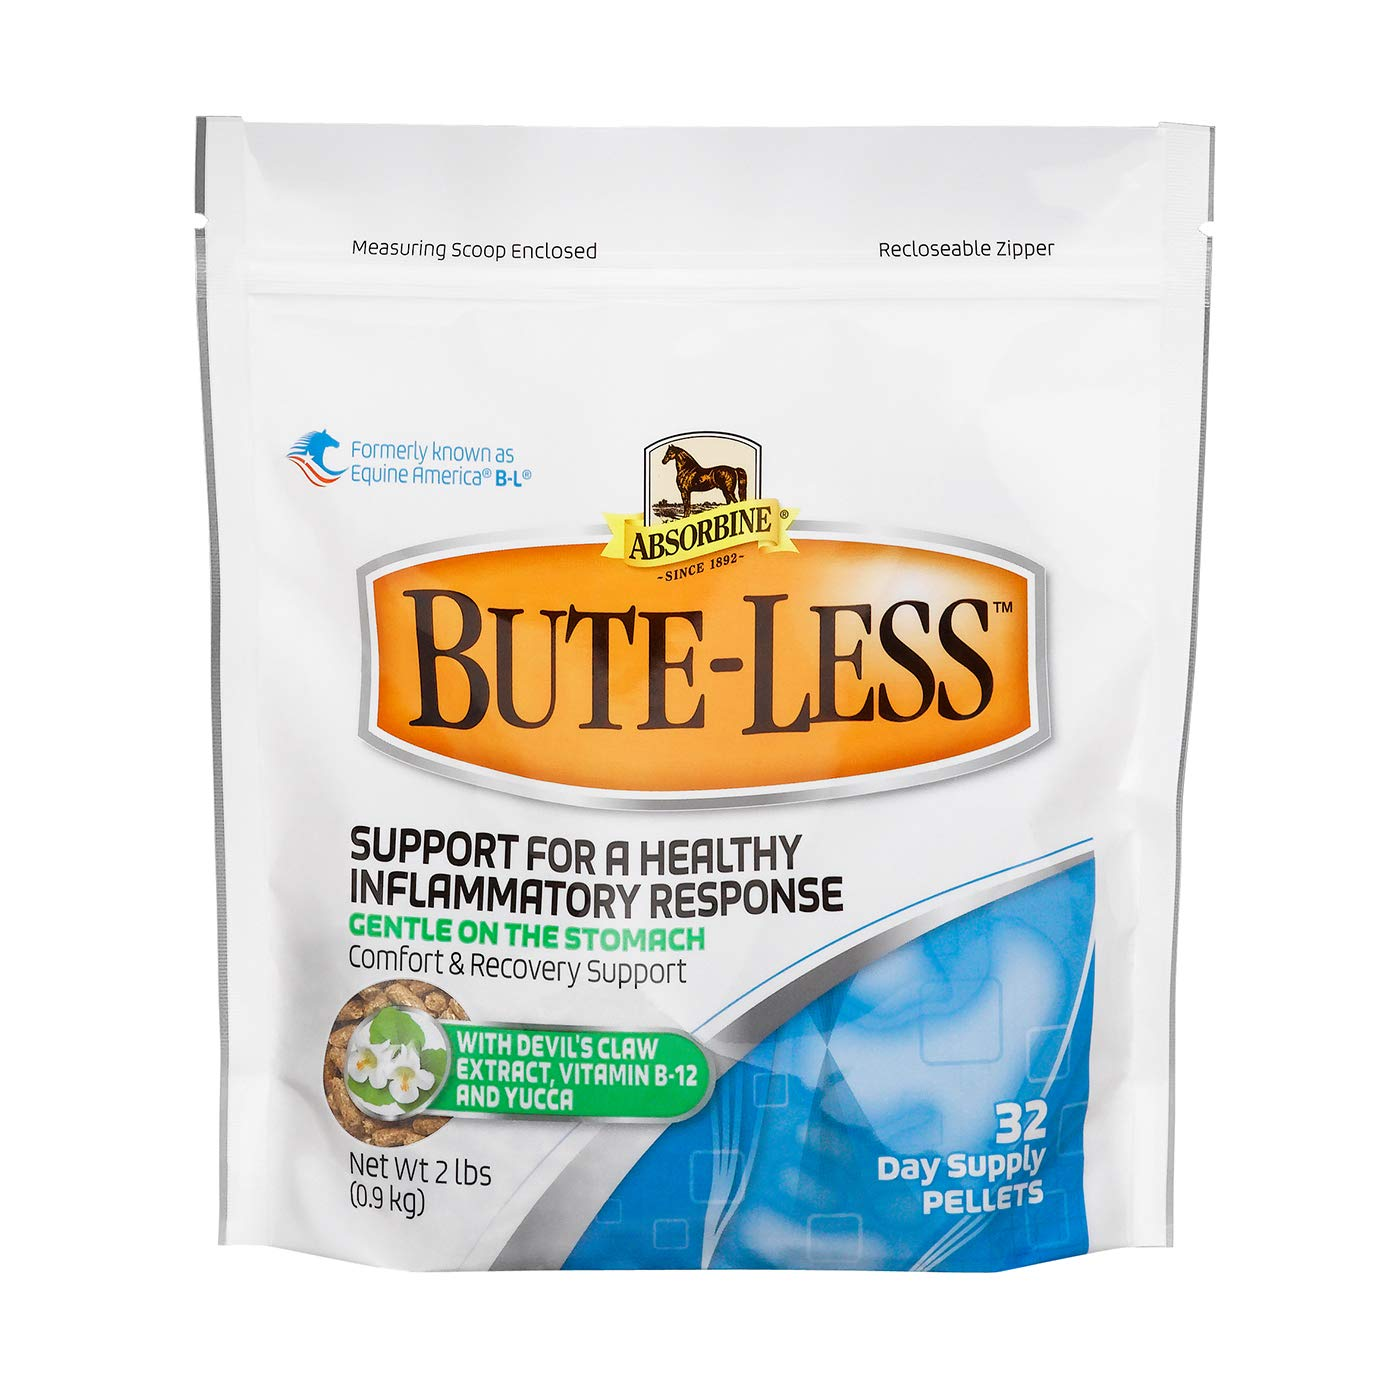 Absorbine Bute-Less Comfort & Recovery Supplement Pellets by Absorbine